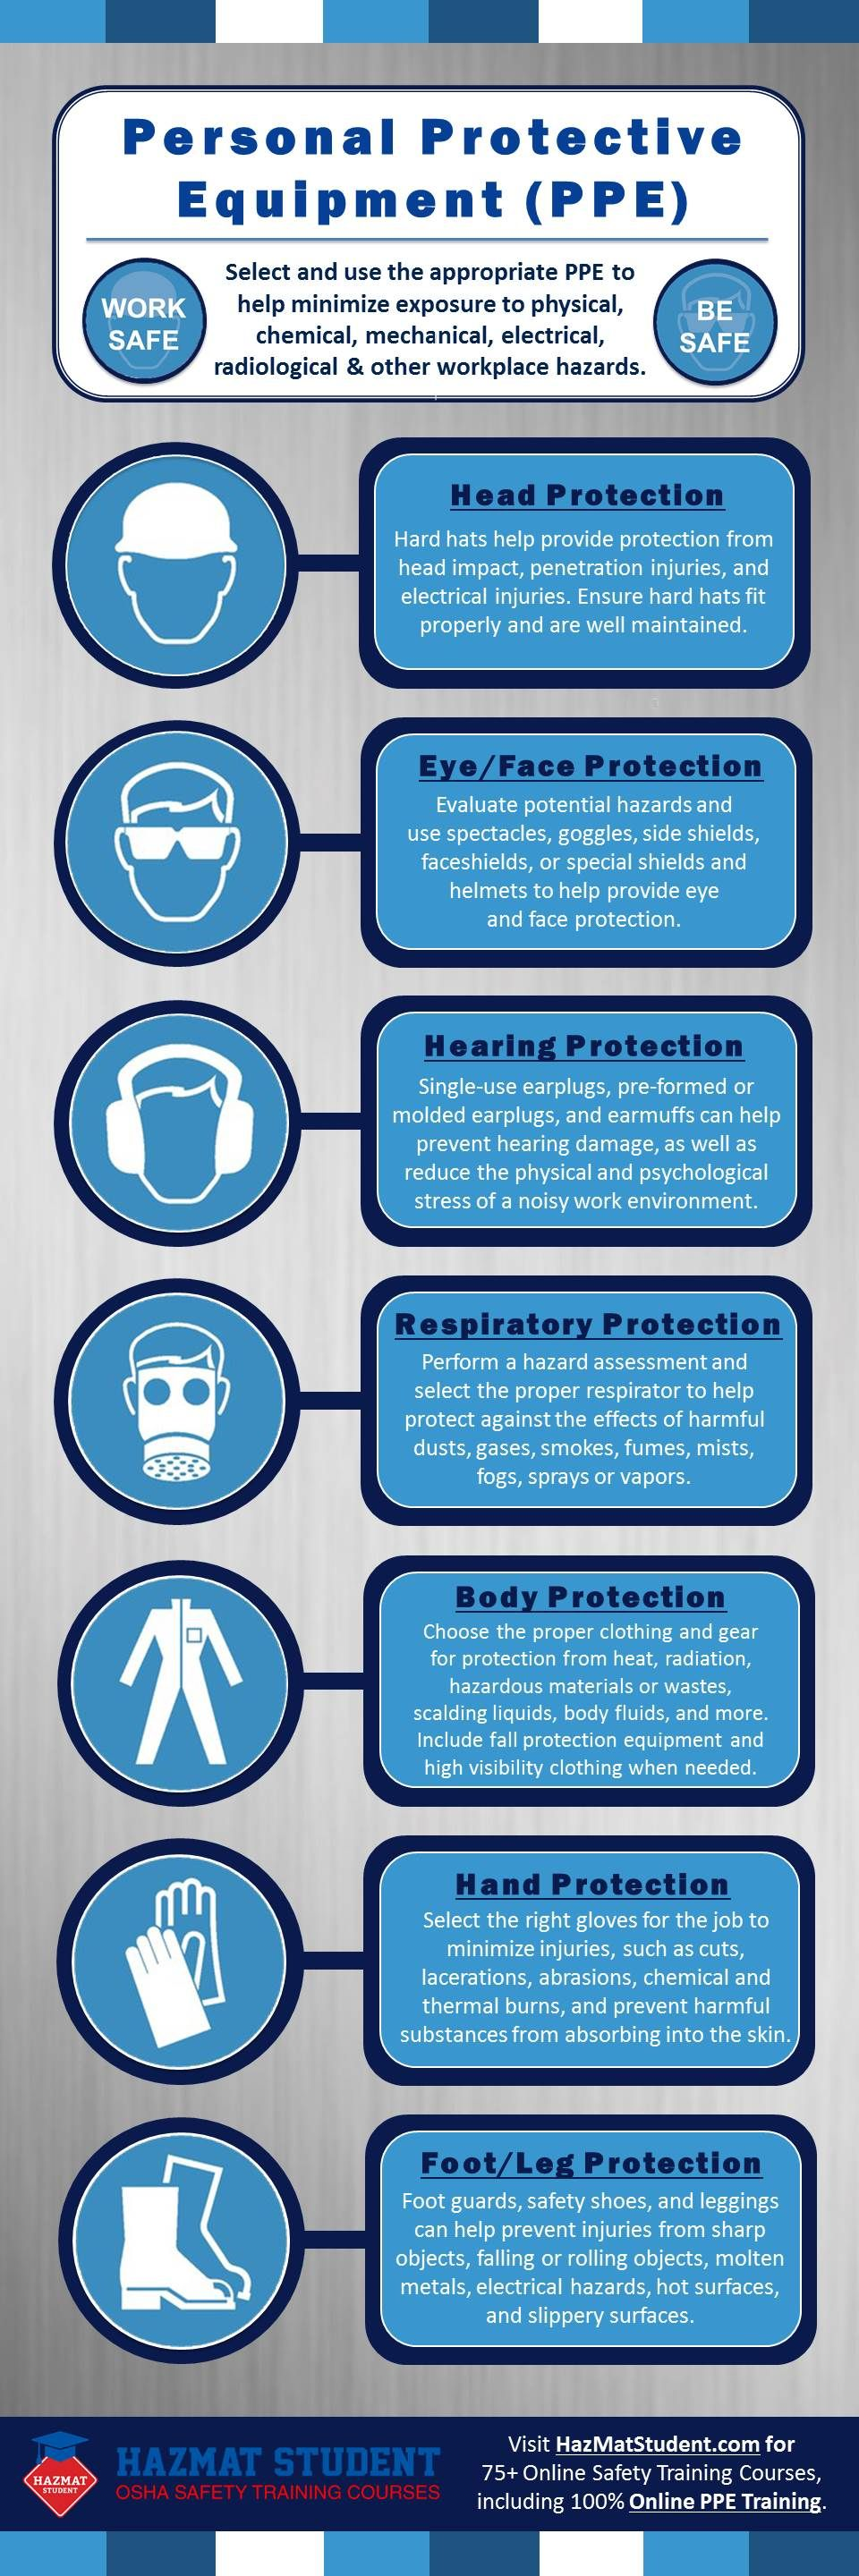 Overview of basic Personal Protective Equipment (PPE) to